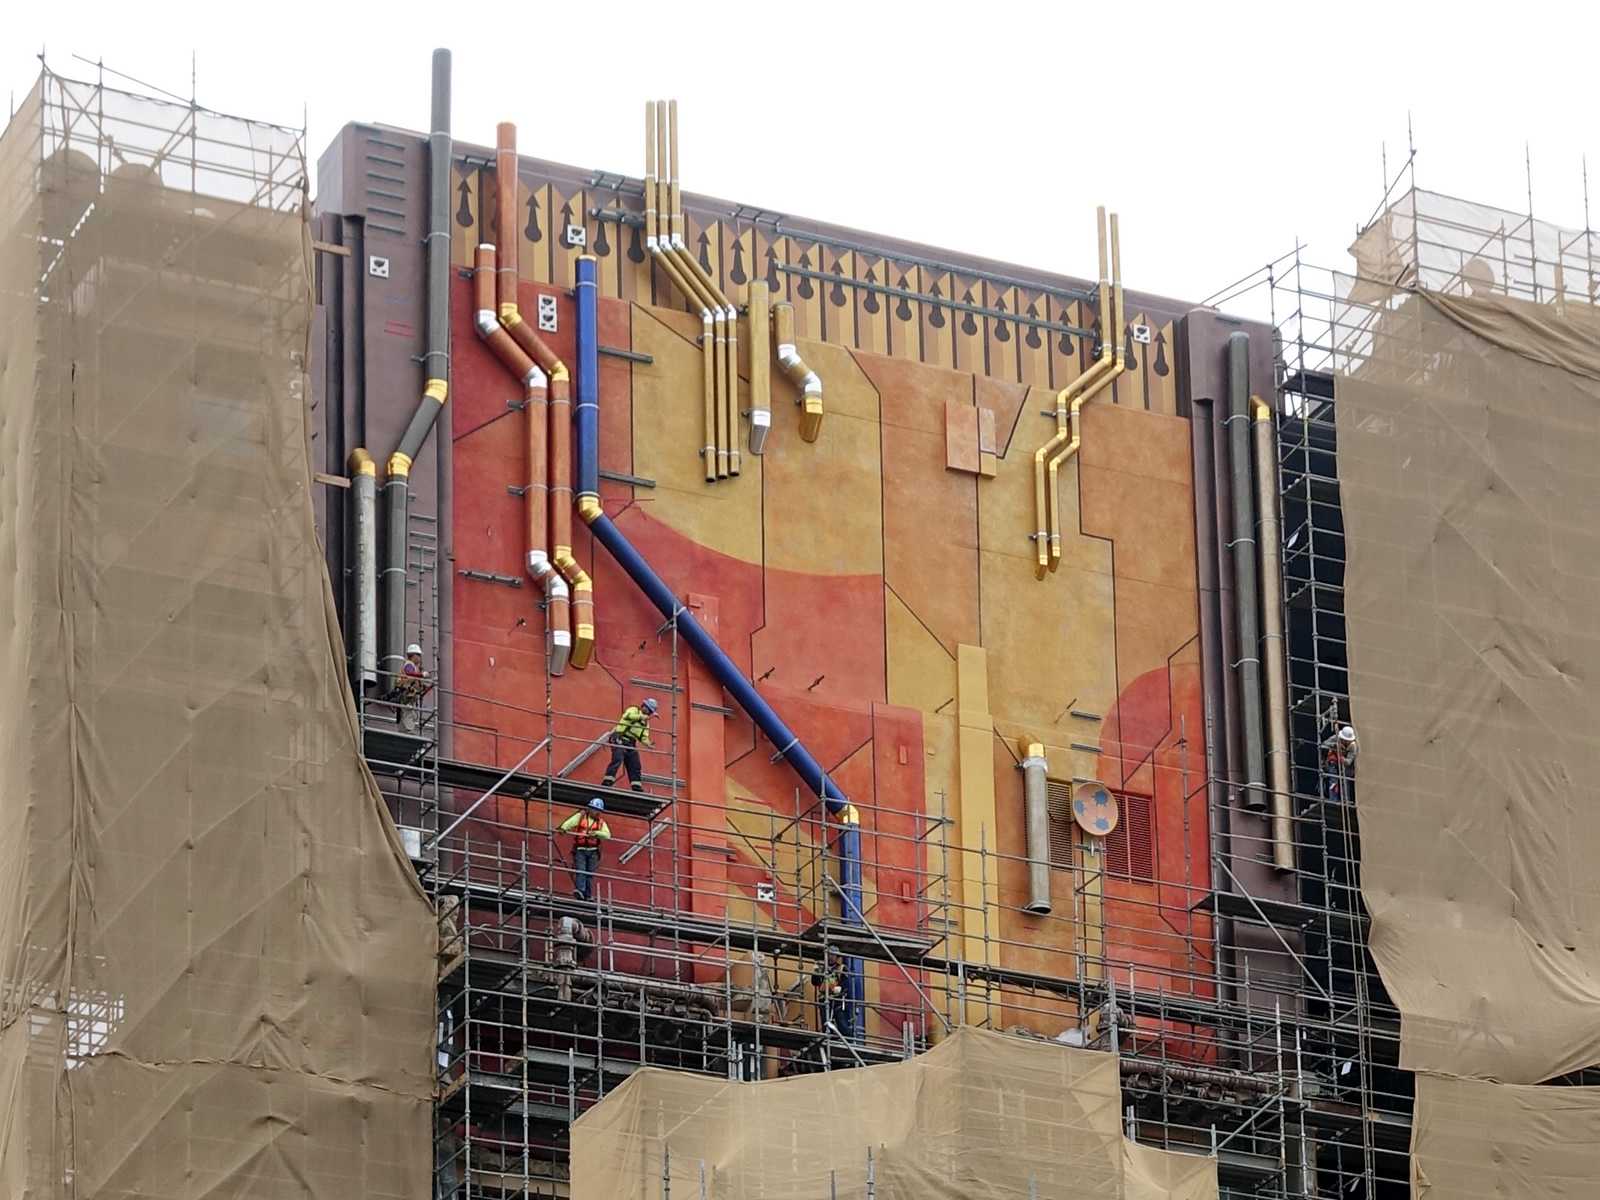 Pipes and satellite dishes accent the metallic motif of the Guardians of the Galaxy exterior